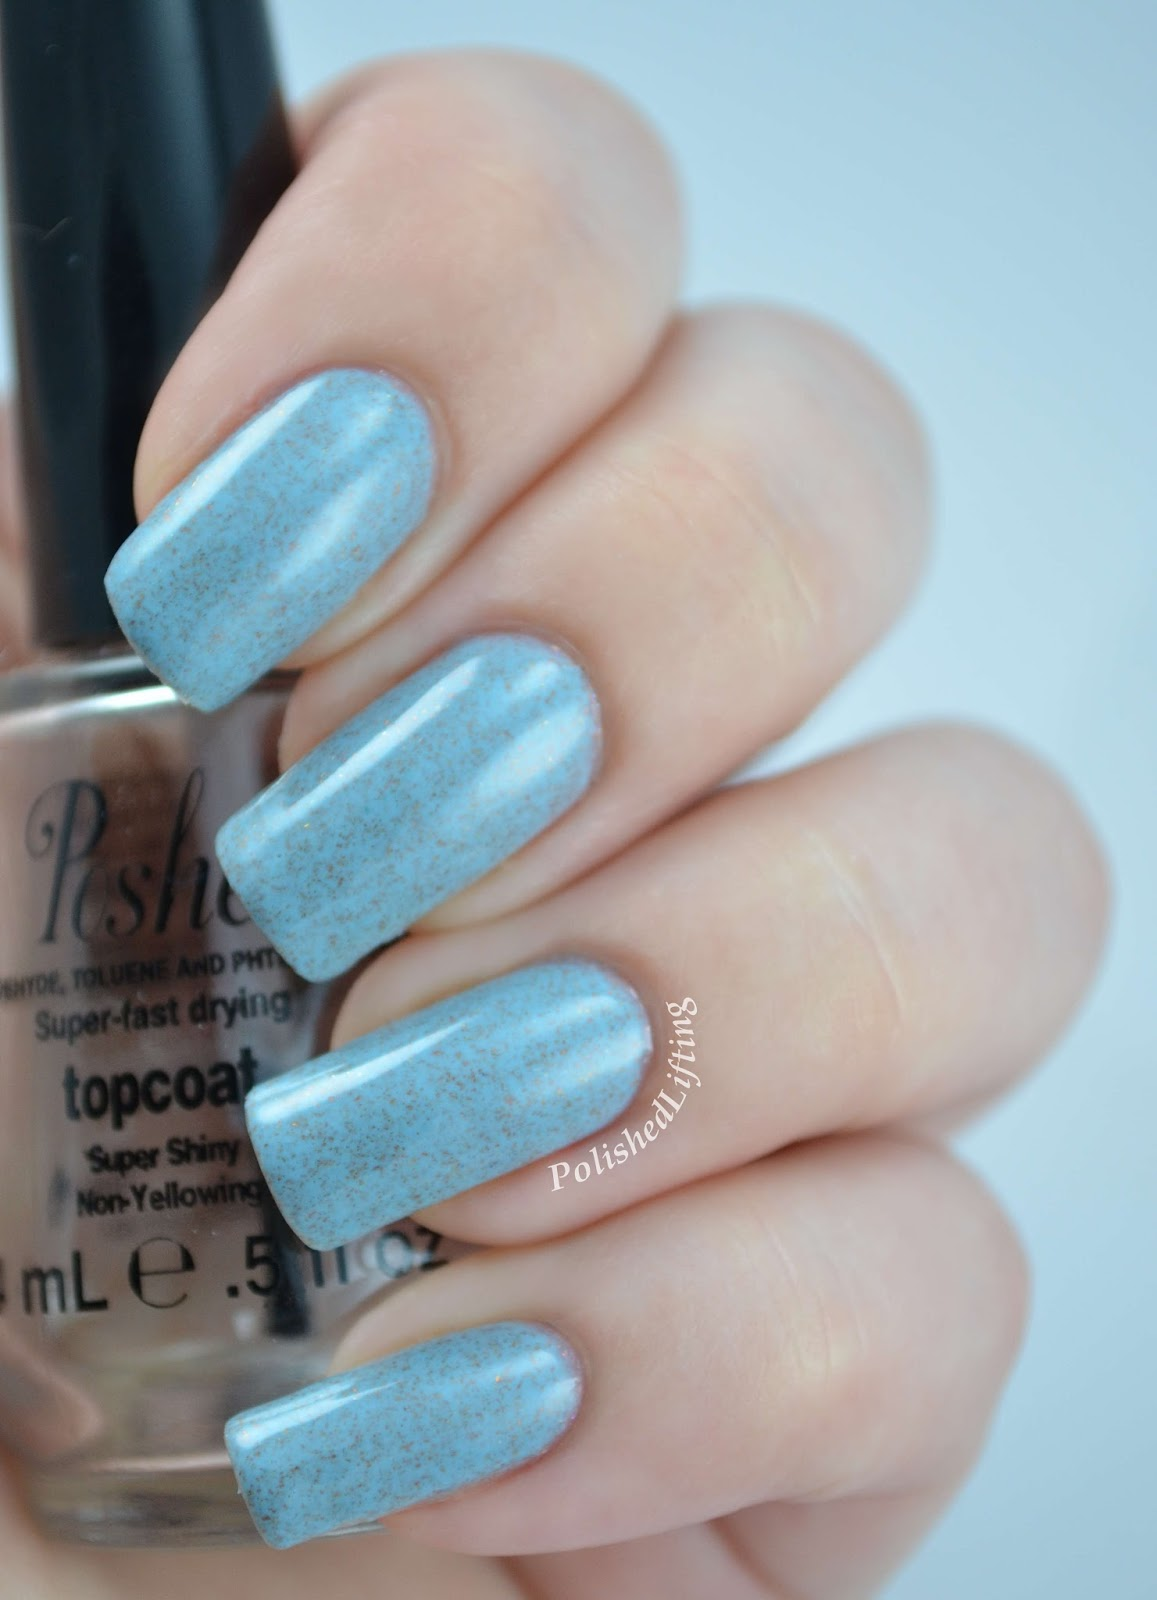 Reverie Nail Lacquer Agave Summer 2014